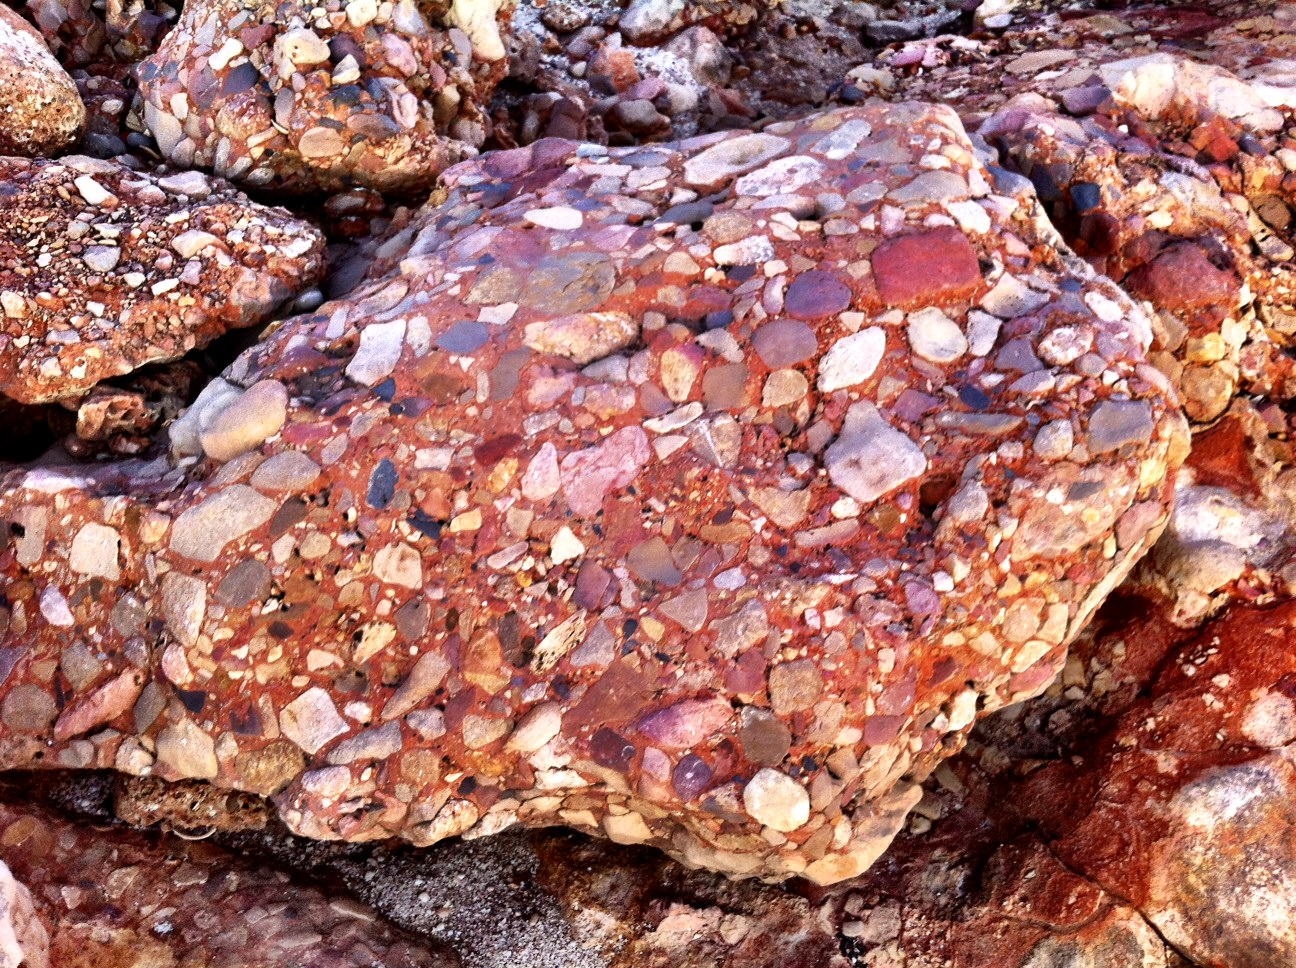 Any Budding Geologists Out There That Can Identify This?